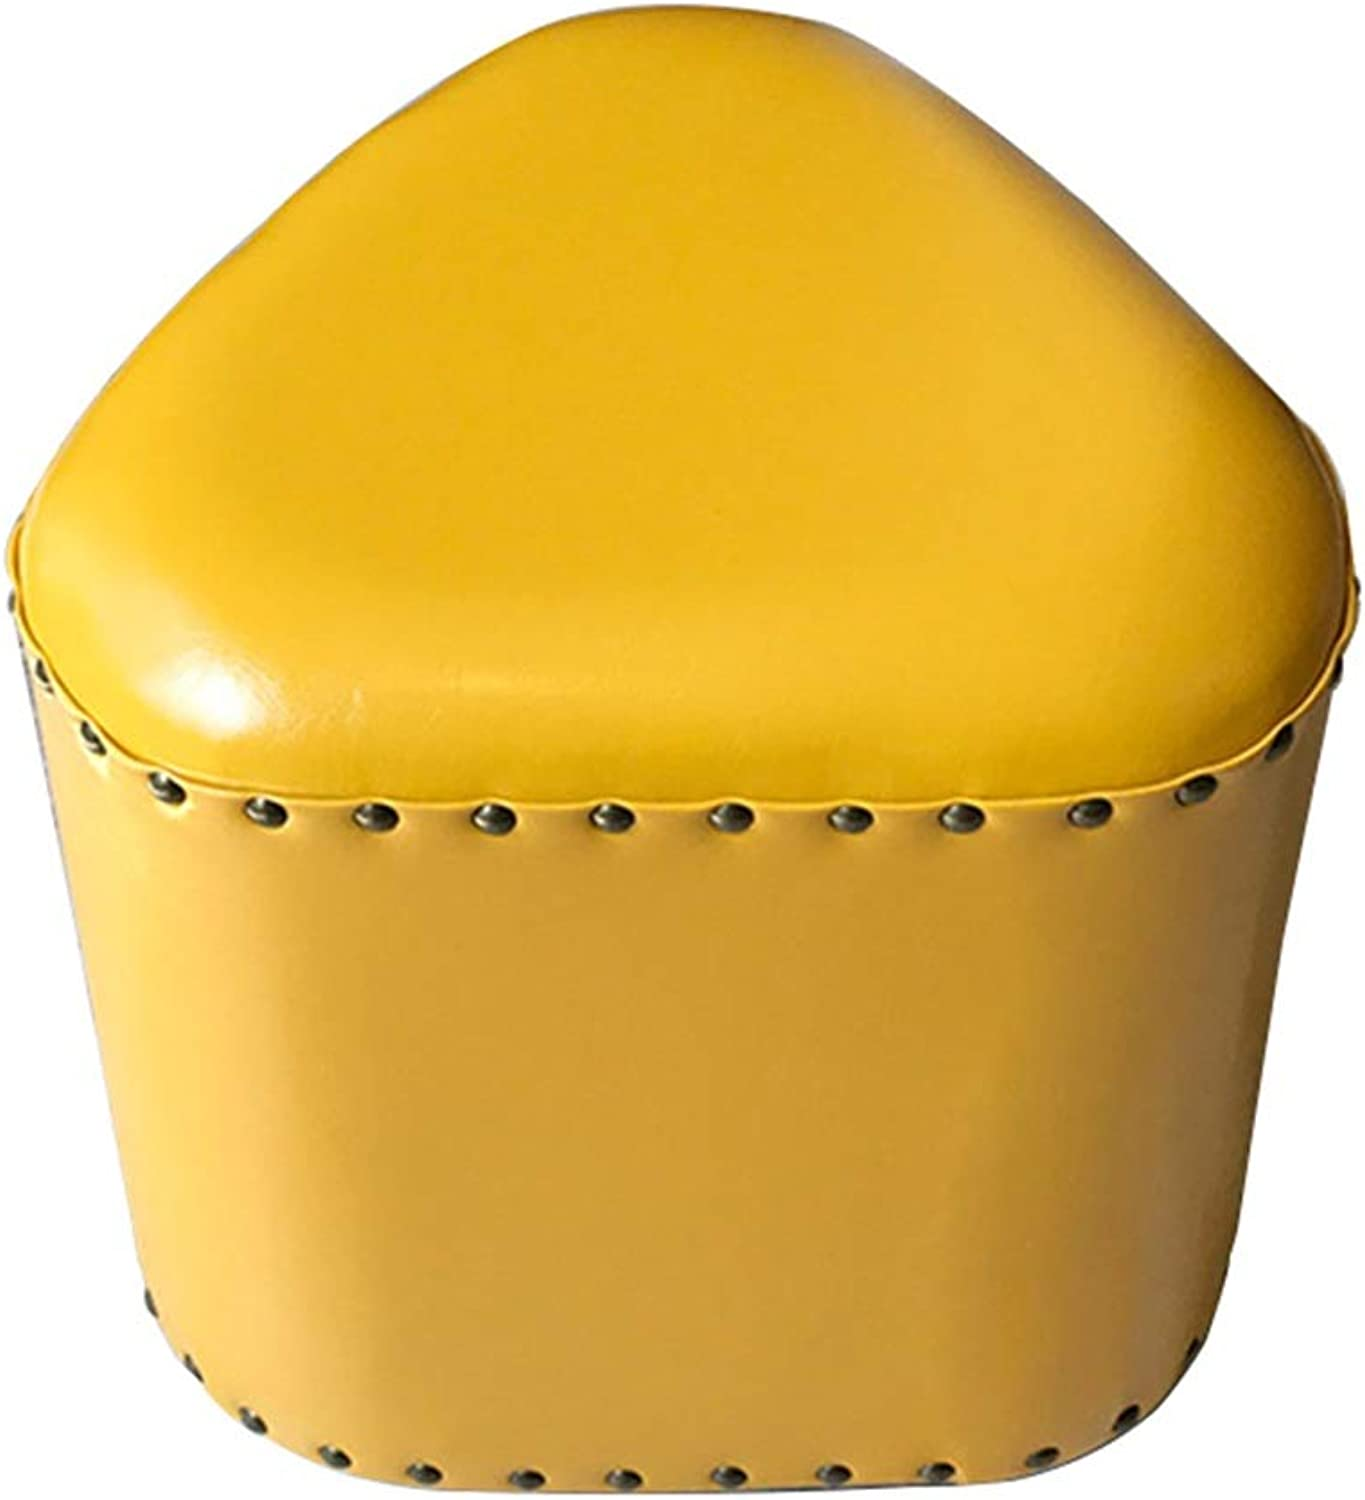 ZHAOYONGLI Stool Footstool Change shoes Bench Creative Leather Pier Lazy Low Stool Living Room Seat Triangle Sofa Stool Creative Solid Durable Long Lasting (color   Yellow, Size   36  40cm)